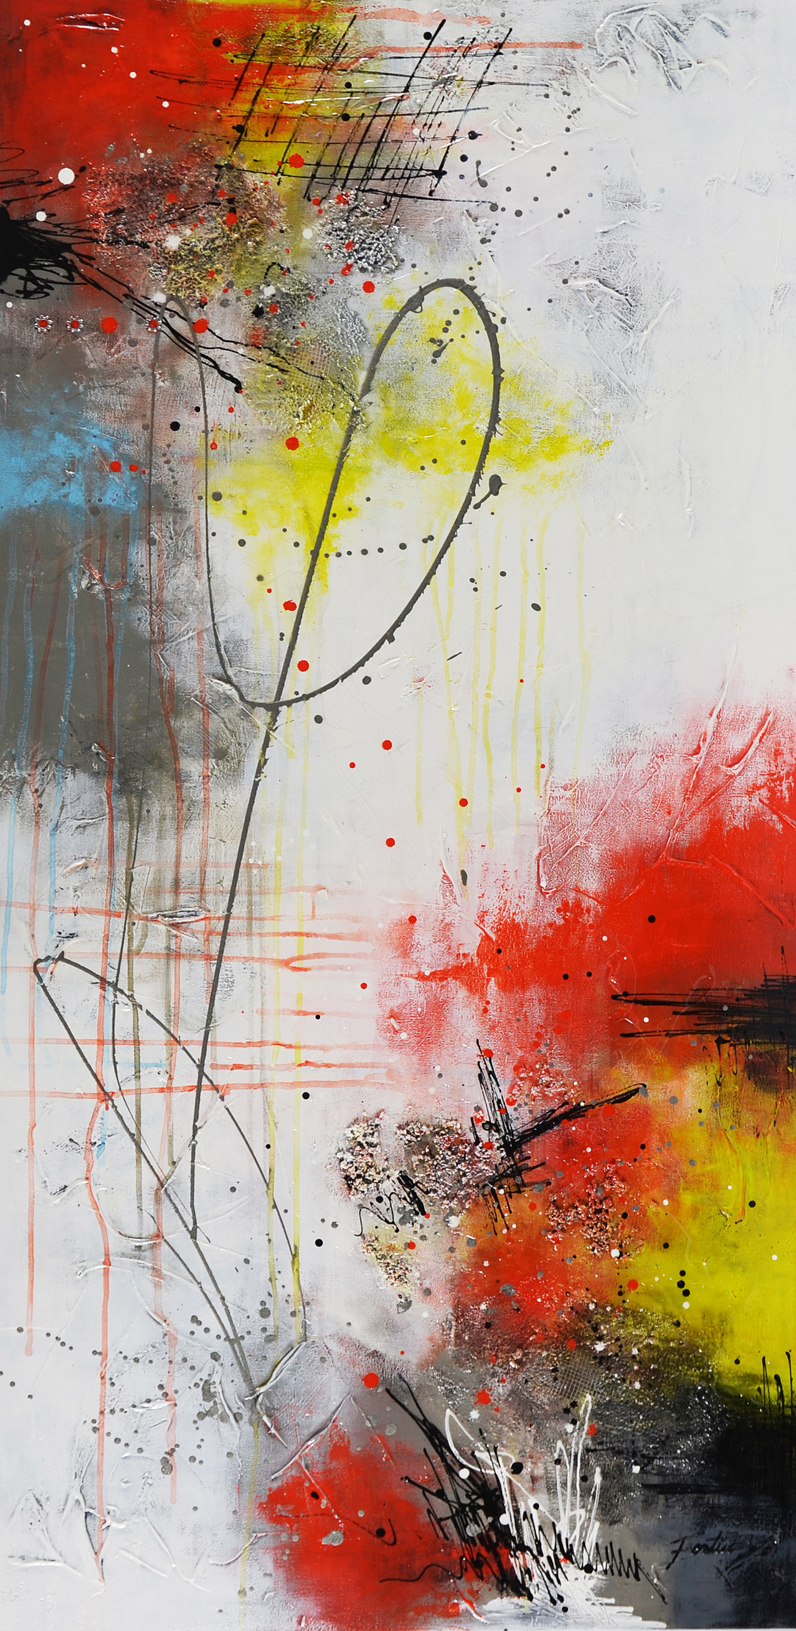 Amour naissant, 2019, Mixed media on canvas, 48'' x 24''